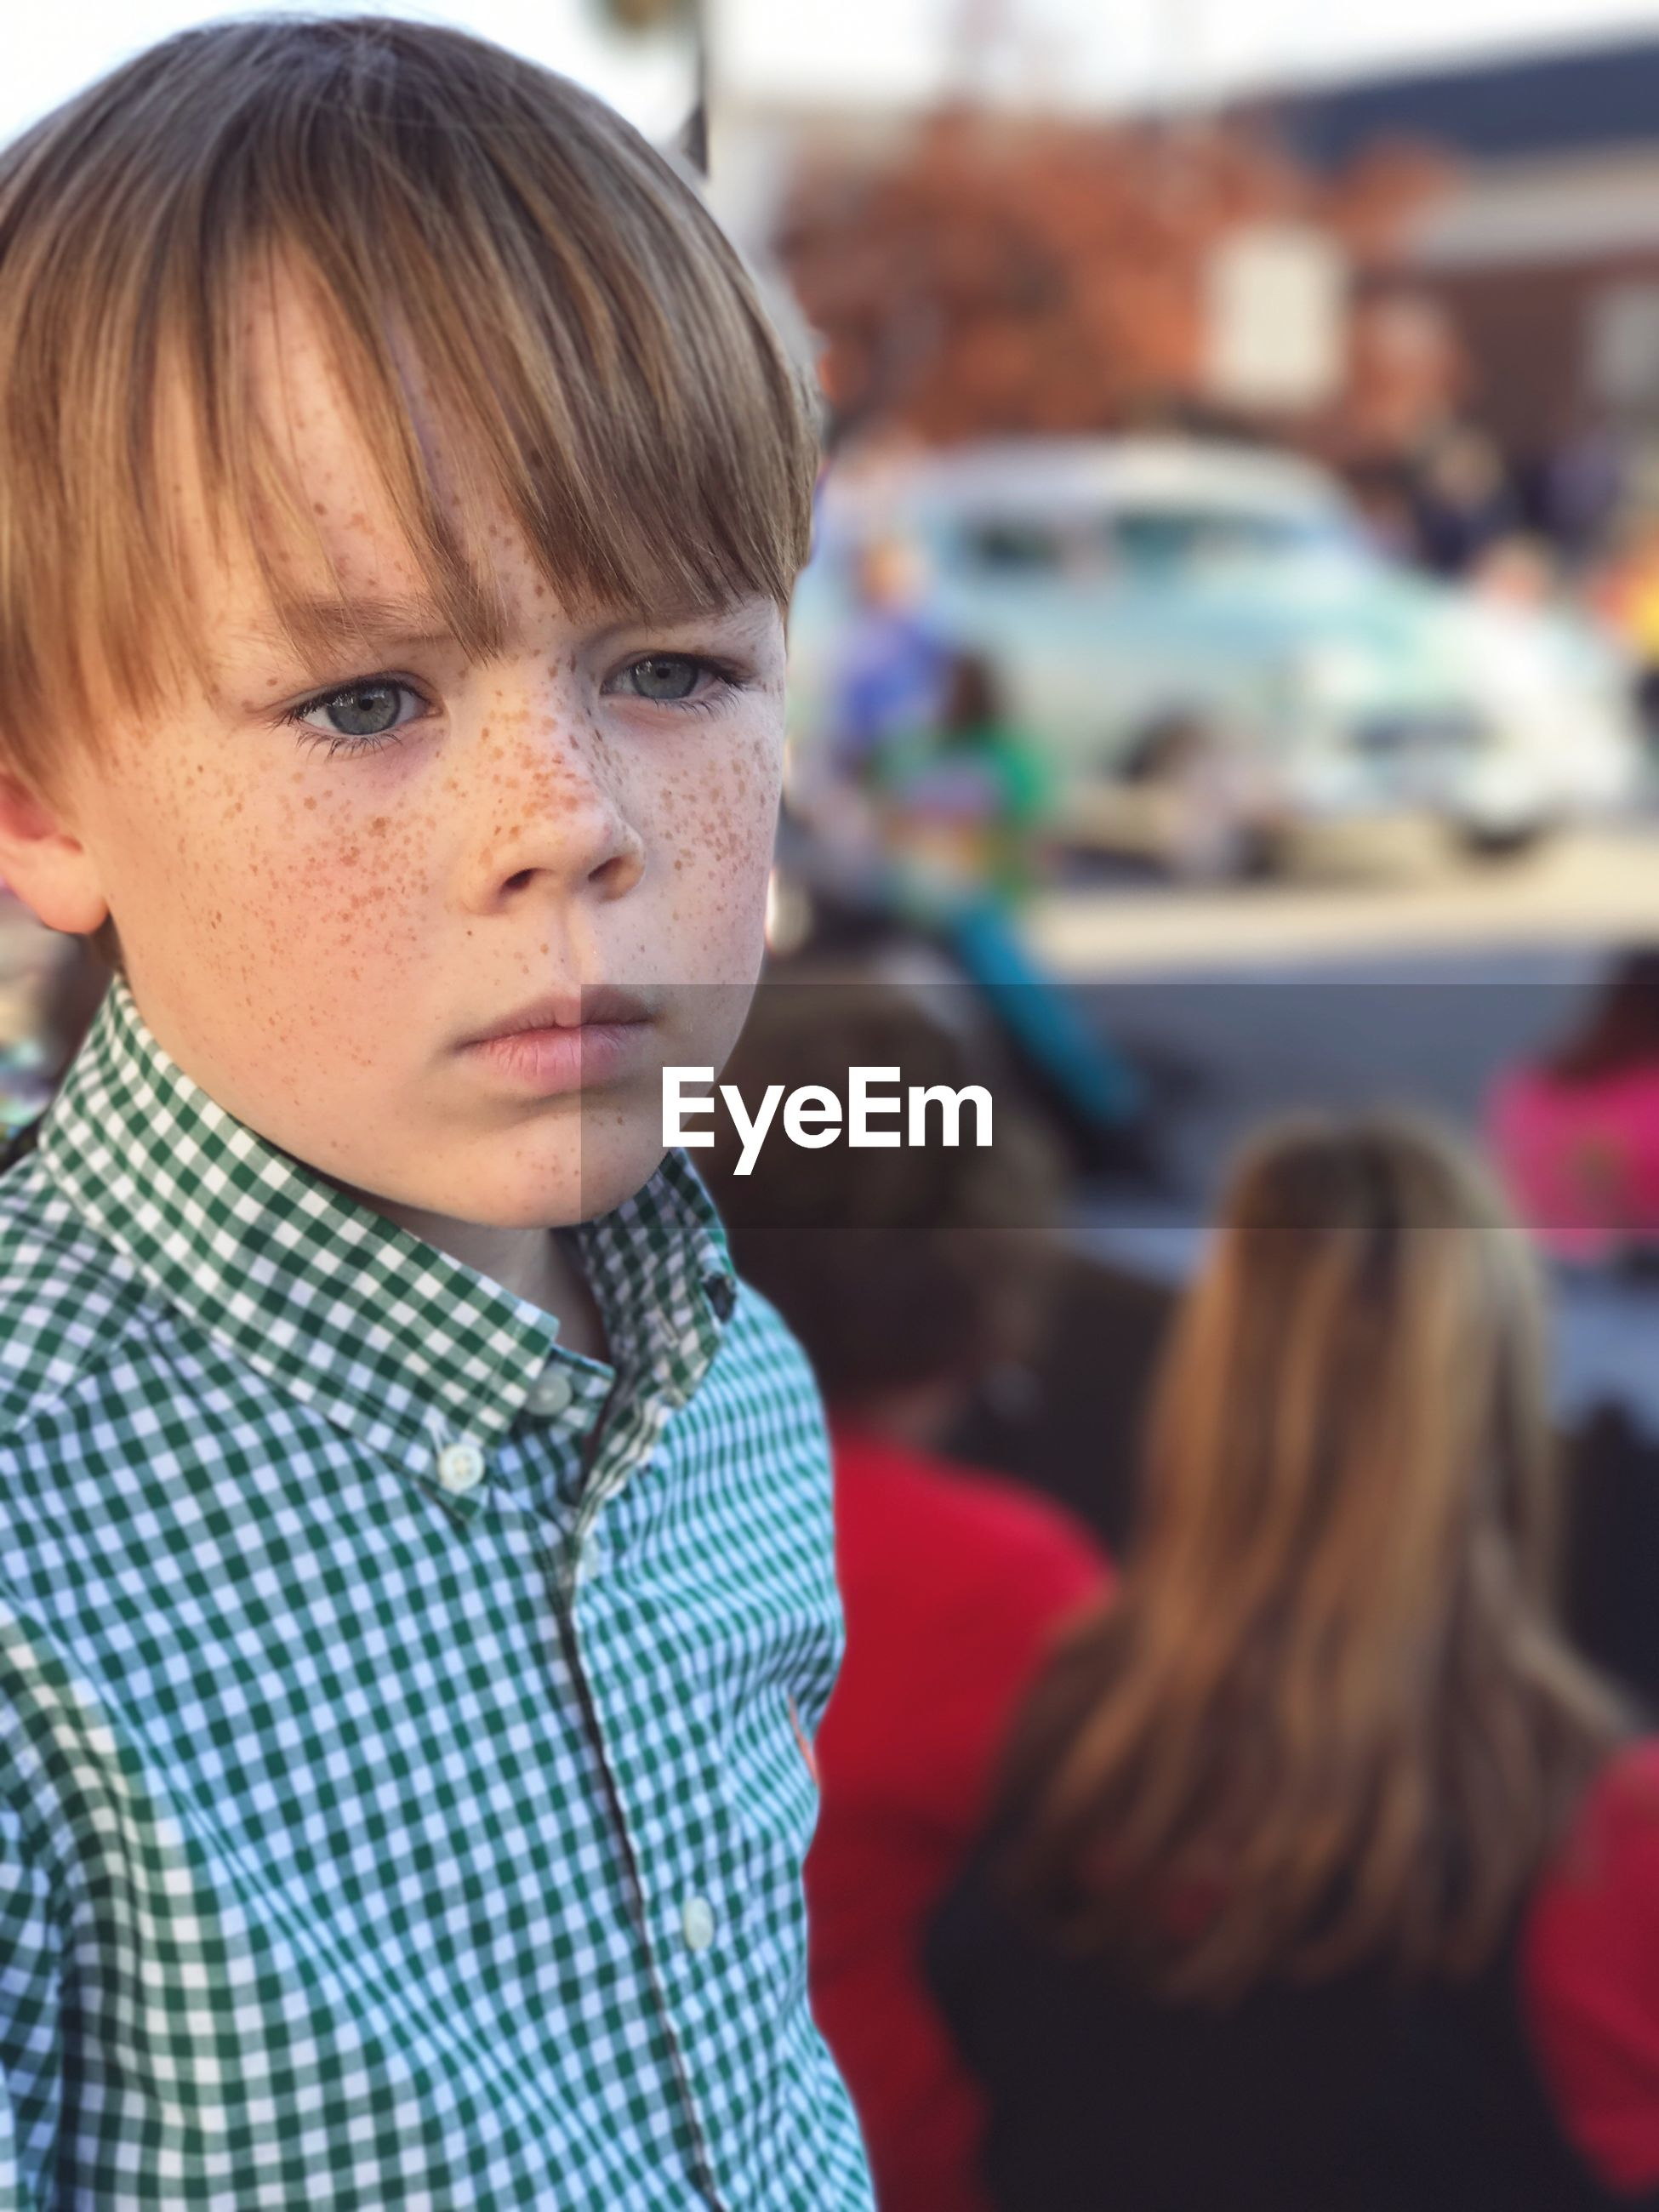 Close-Up Of Boy With Freckles On Face In City